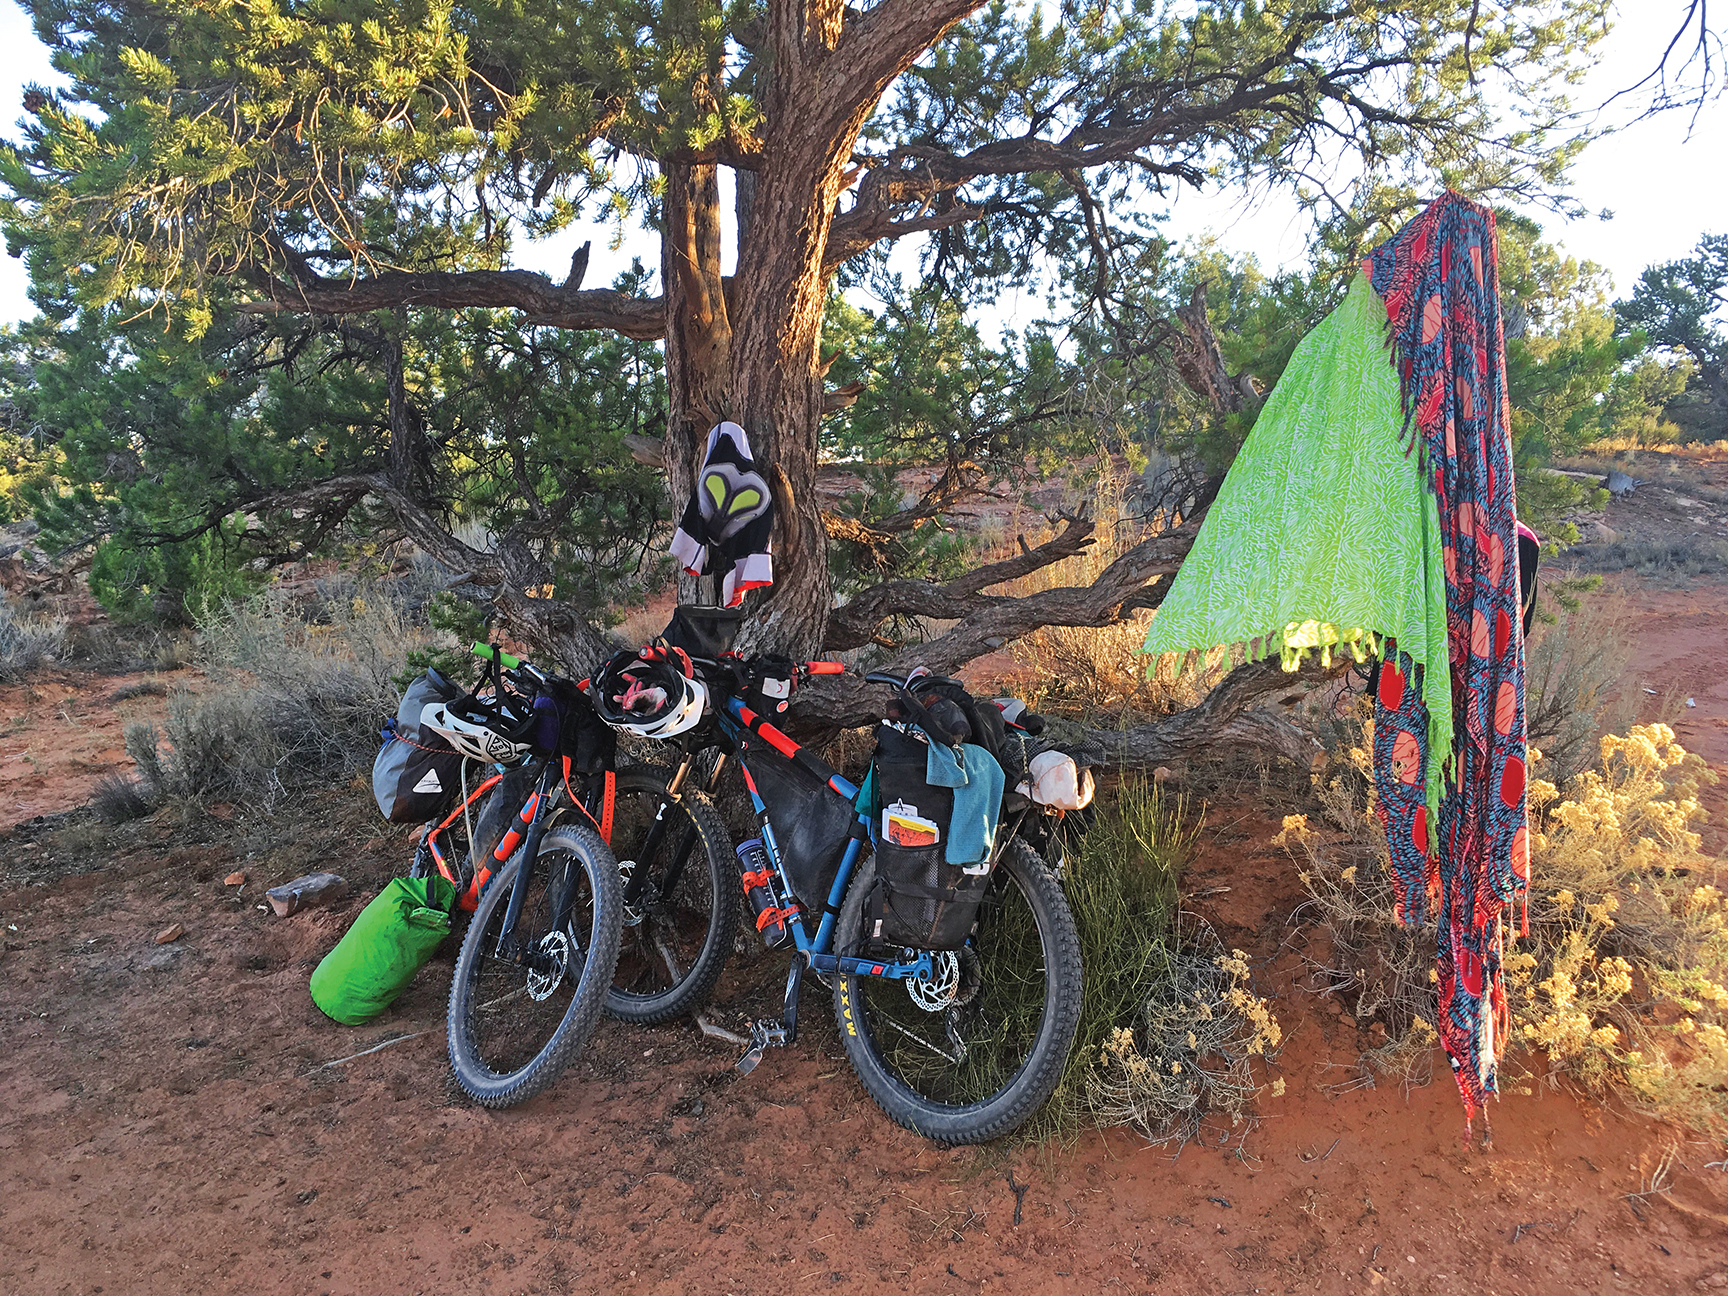 Bikes rest in the shade of a Pinyon Pine. Photo by Ashley Carruth